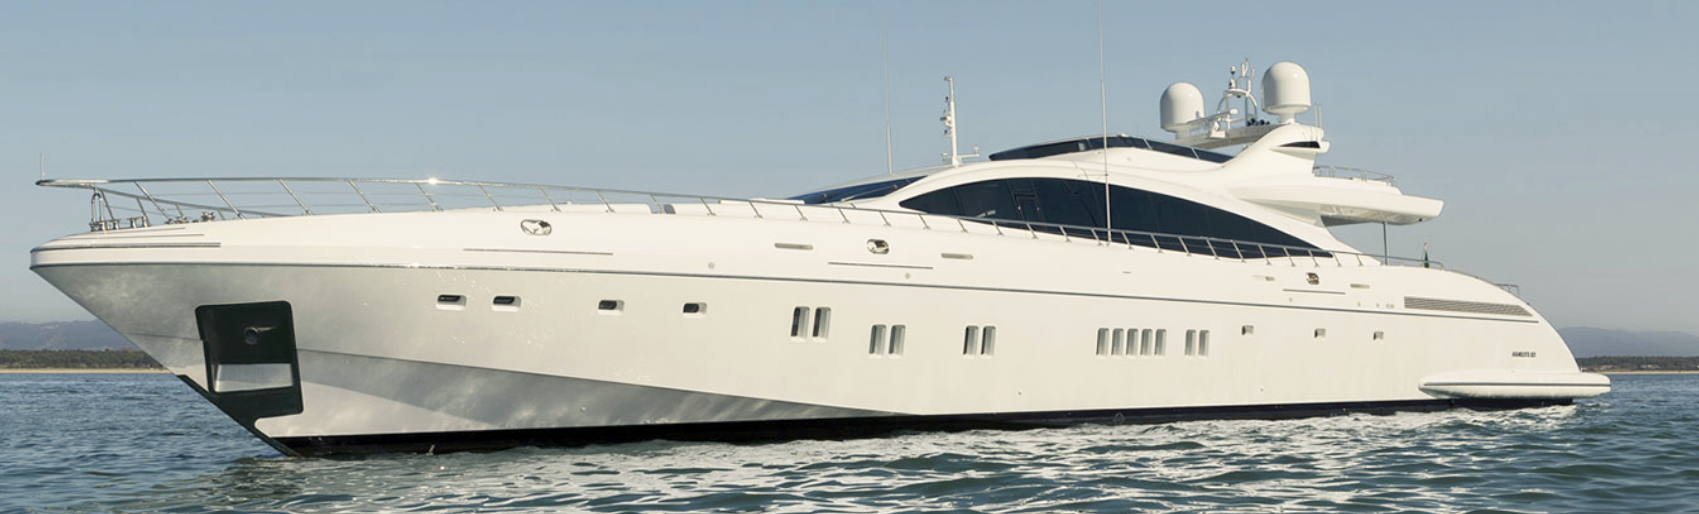 The Most Iconic Yachts of the Overmarine Group   Mangusta! monaco yacht show Presenting The 2018 Edition of the Monaco Yacht Show 155e